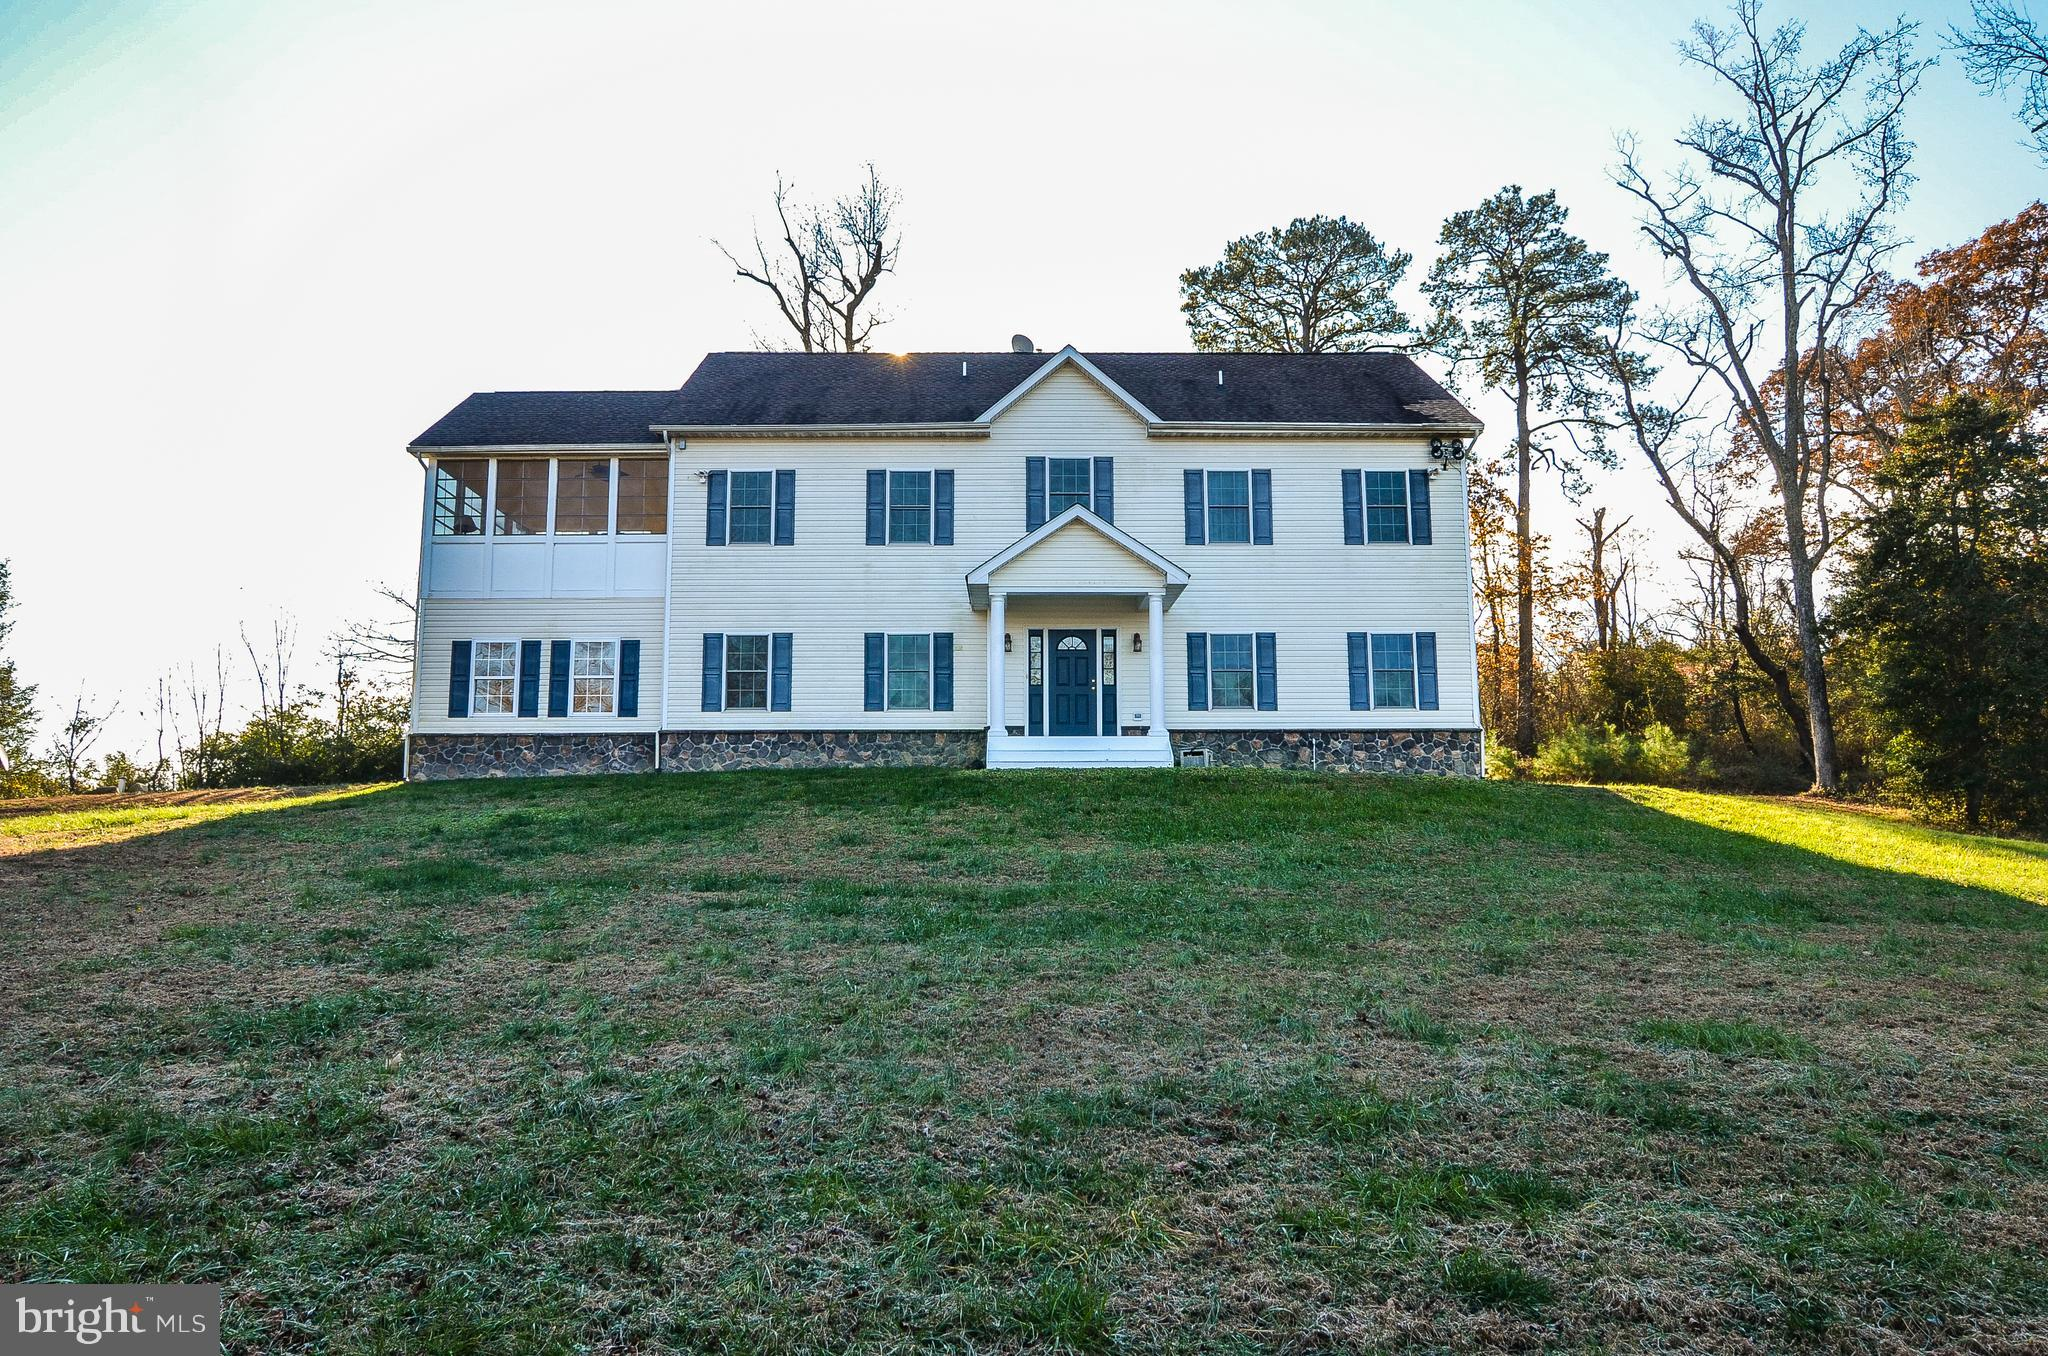 8777 SANDY BEACH LANE, KING GEORGE, VA 22485